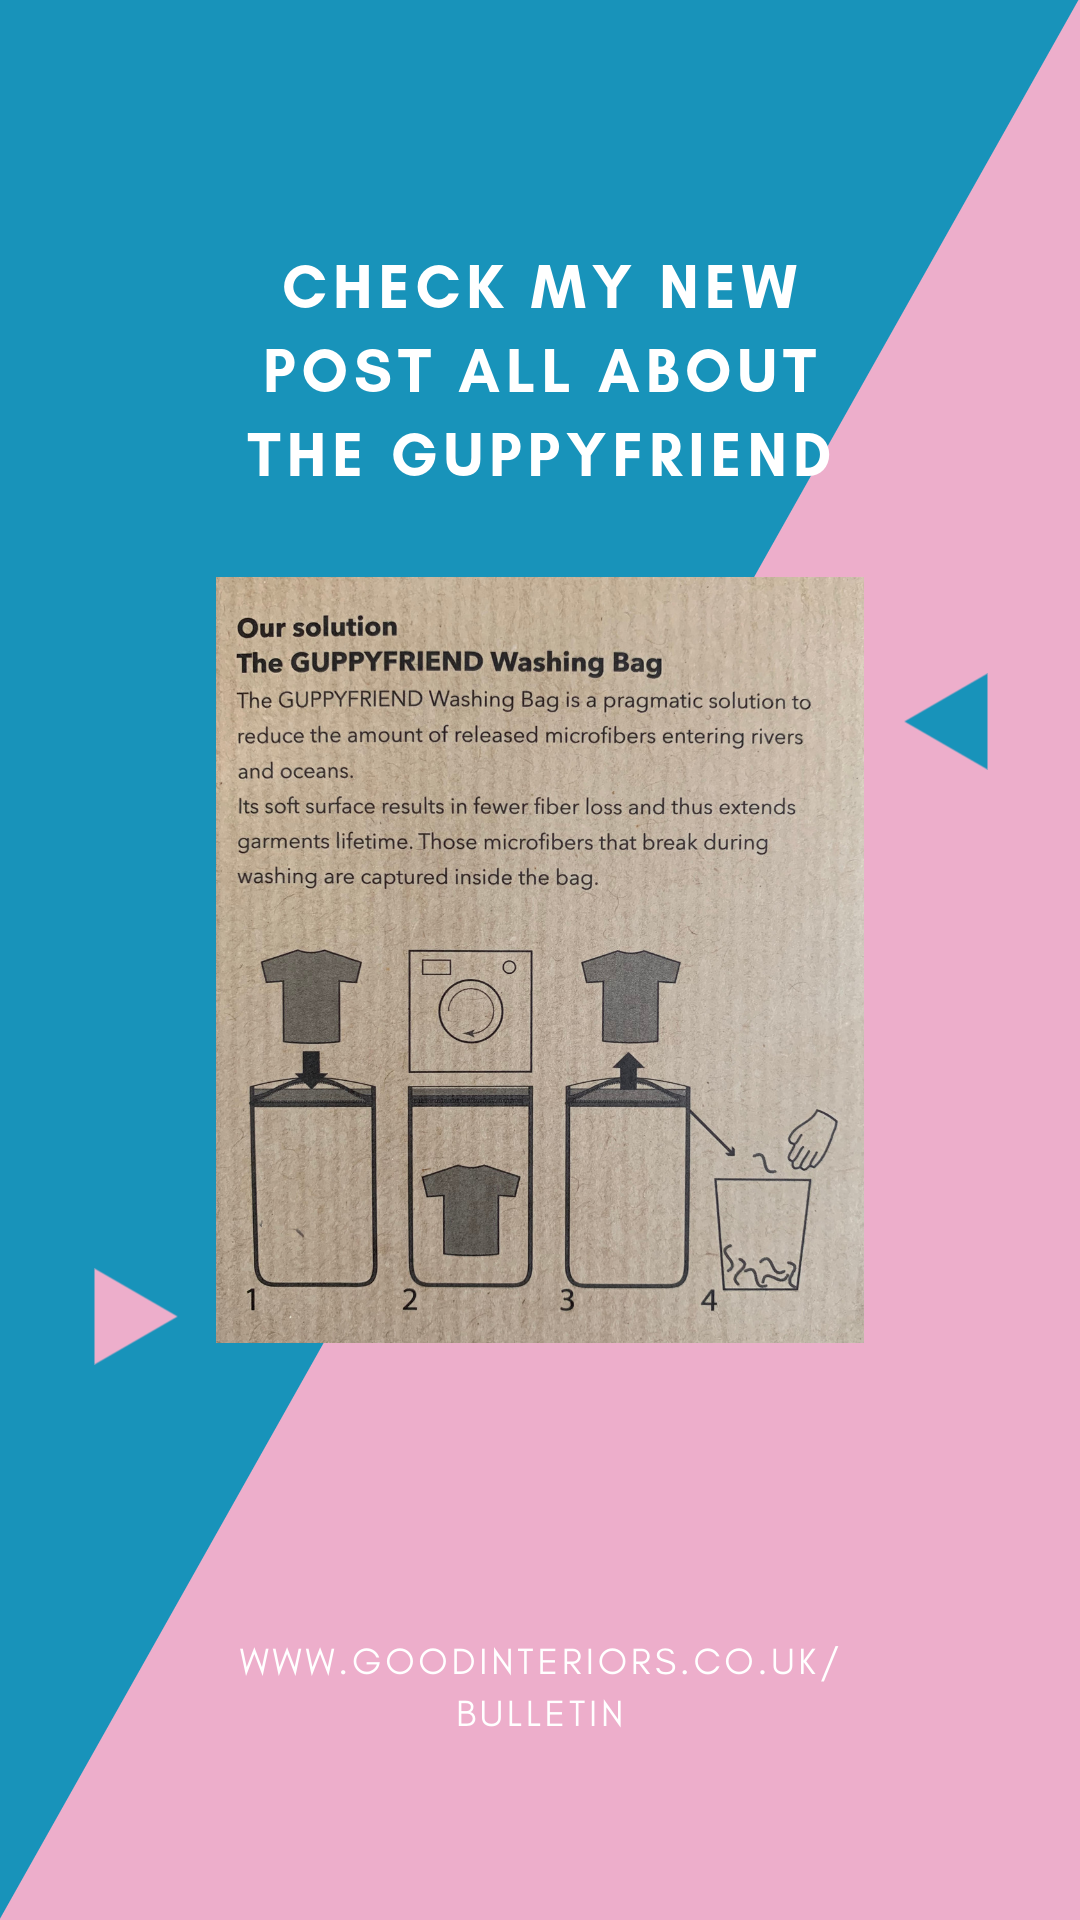 the Guppyfriend stops micro waste from entering our waterways